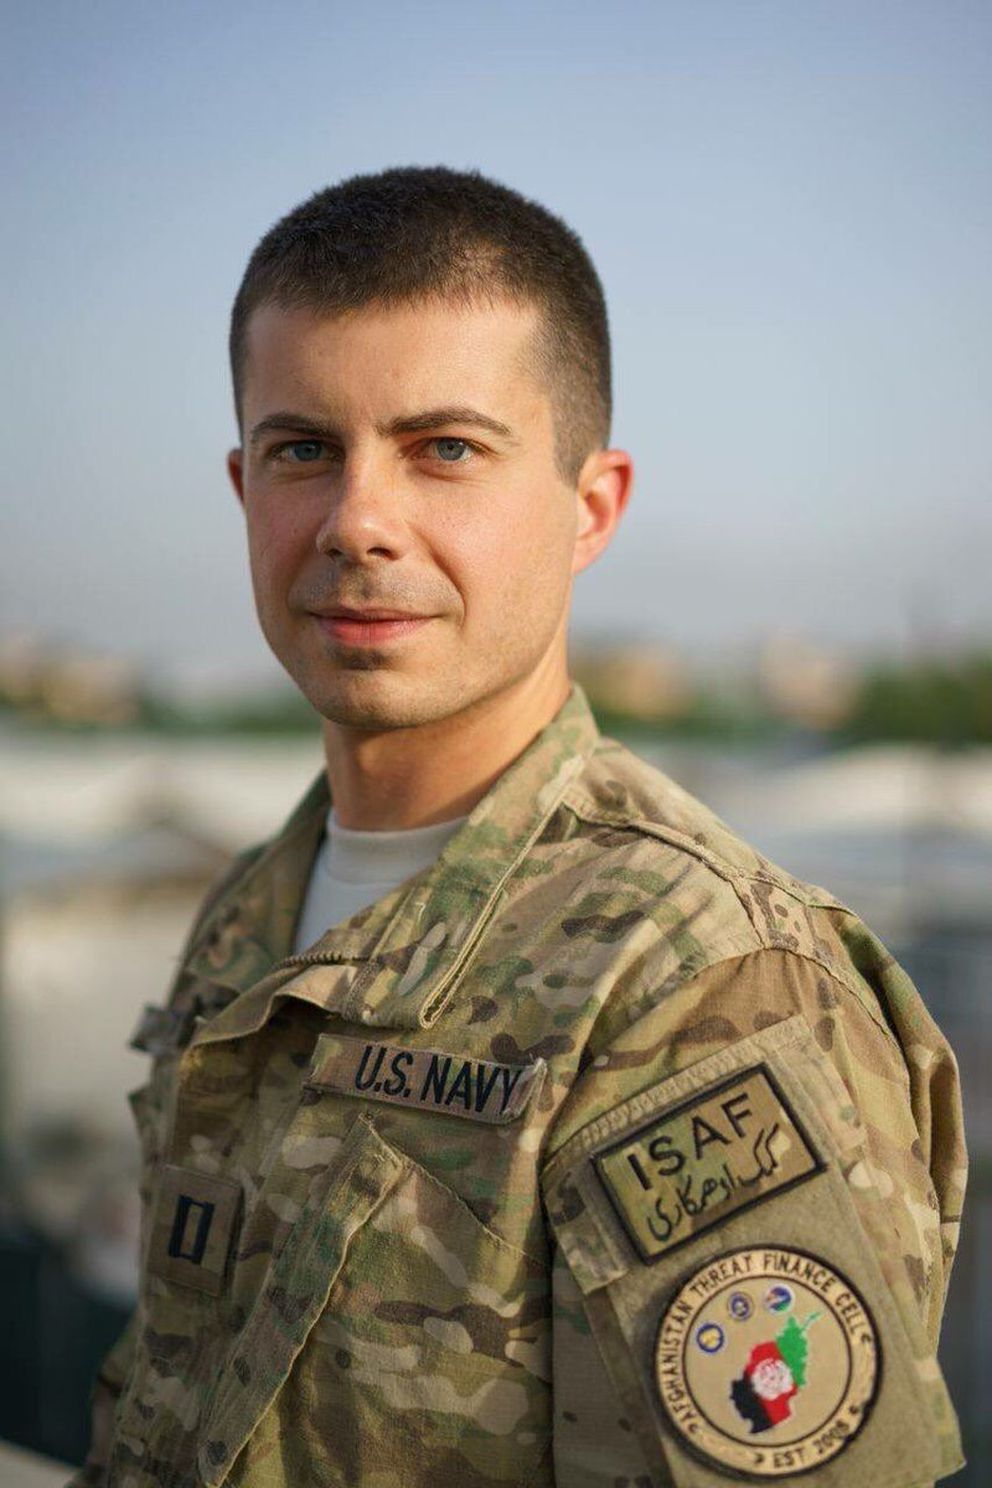 Ensign Pete Buttigieg during his deployment in Afghanistan in 2014. (Courtesy Pete Buttigieg)